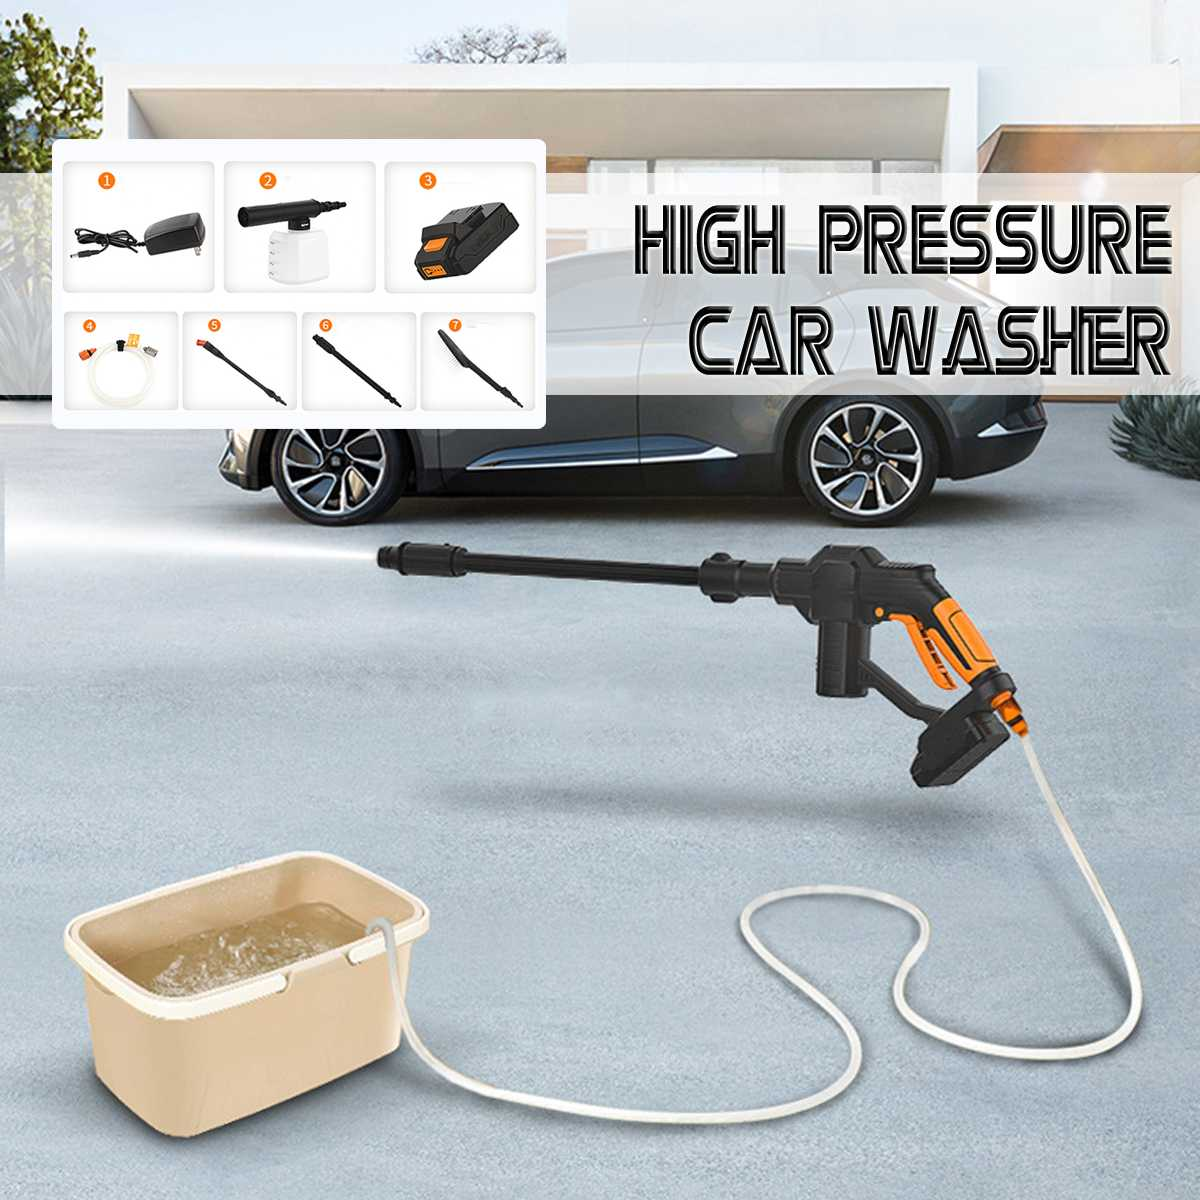 High Pressure Wireless Car Washer Cordless Water For Gun Sprayer Mufti-Functional Foam For Garden Watering Car Wash